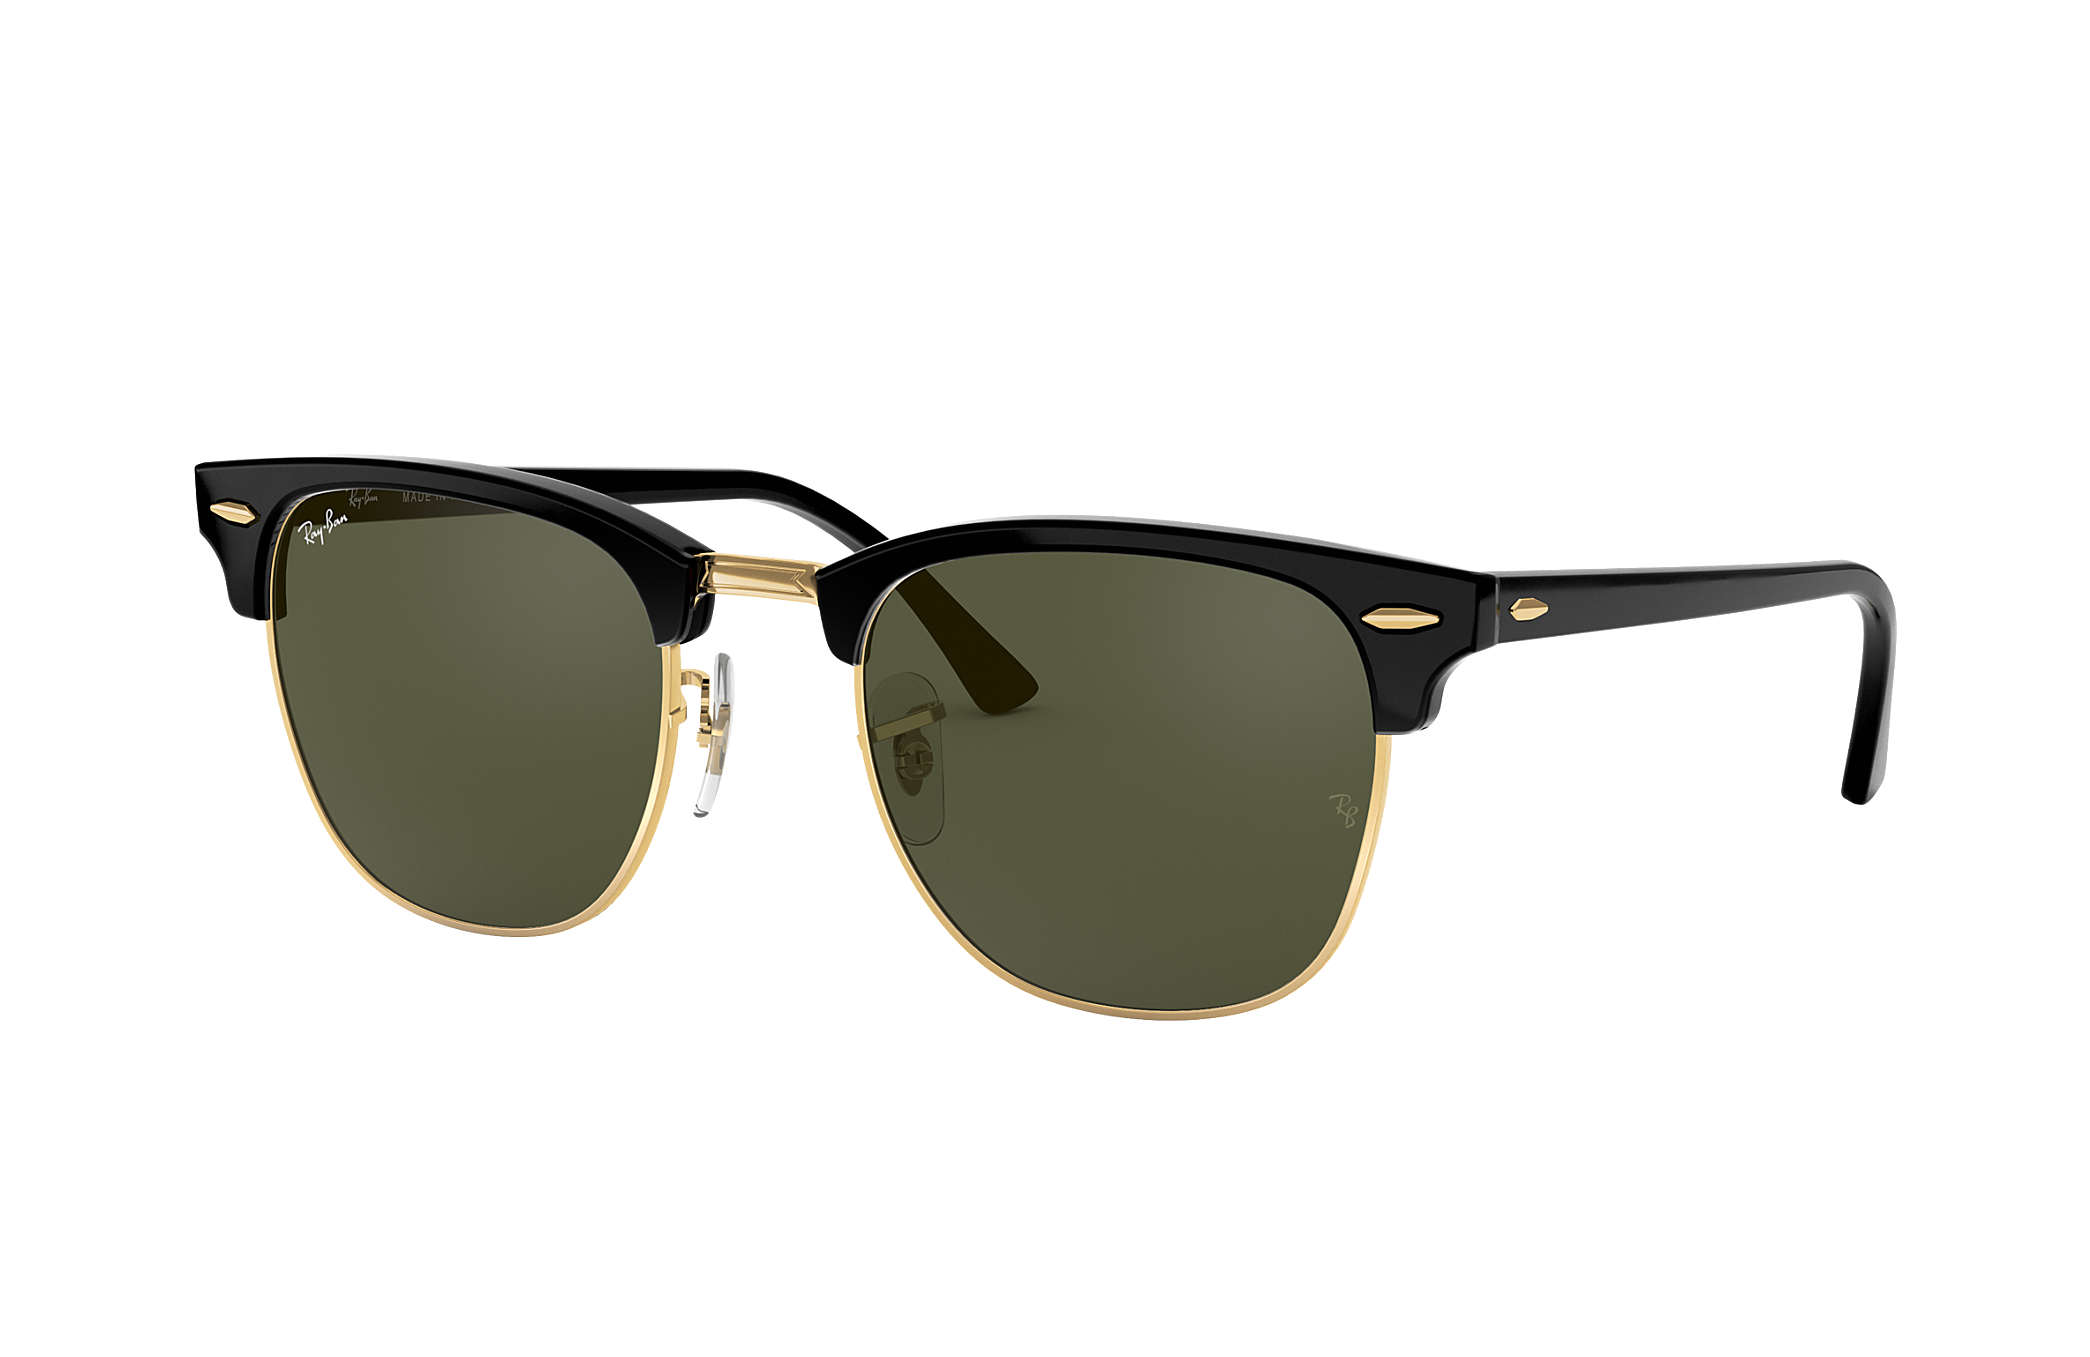 Ray-Ban Clubmaster Classic RB3016 Black - Acetate - Green Lenses ... fa9ea3c271